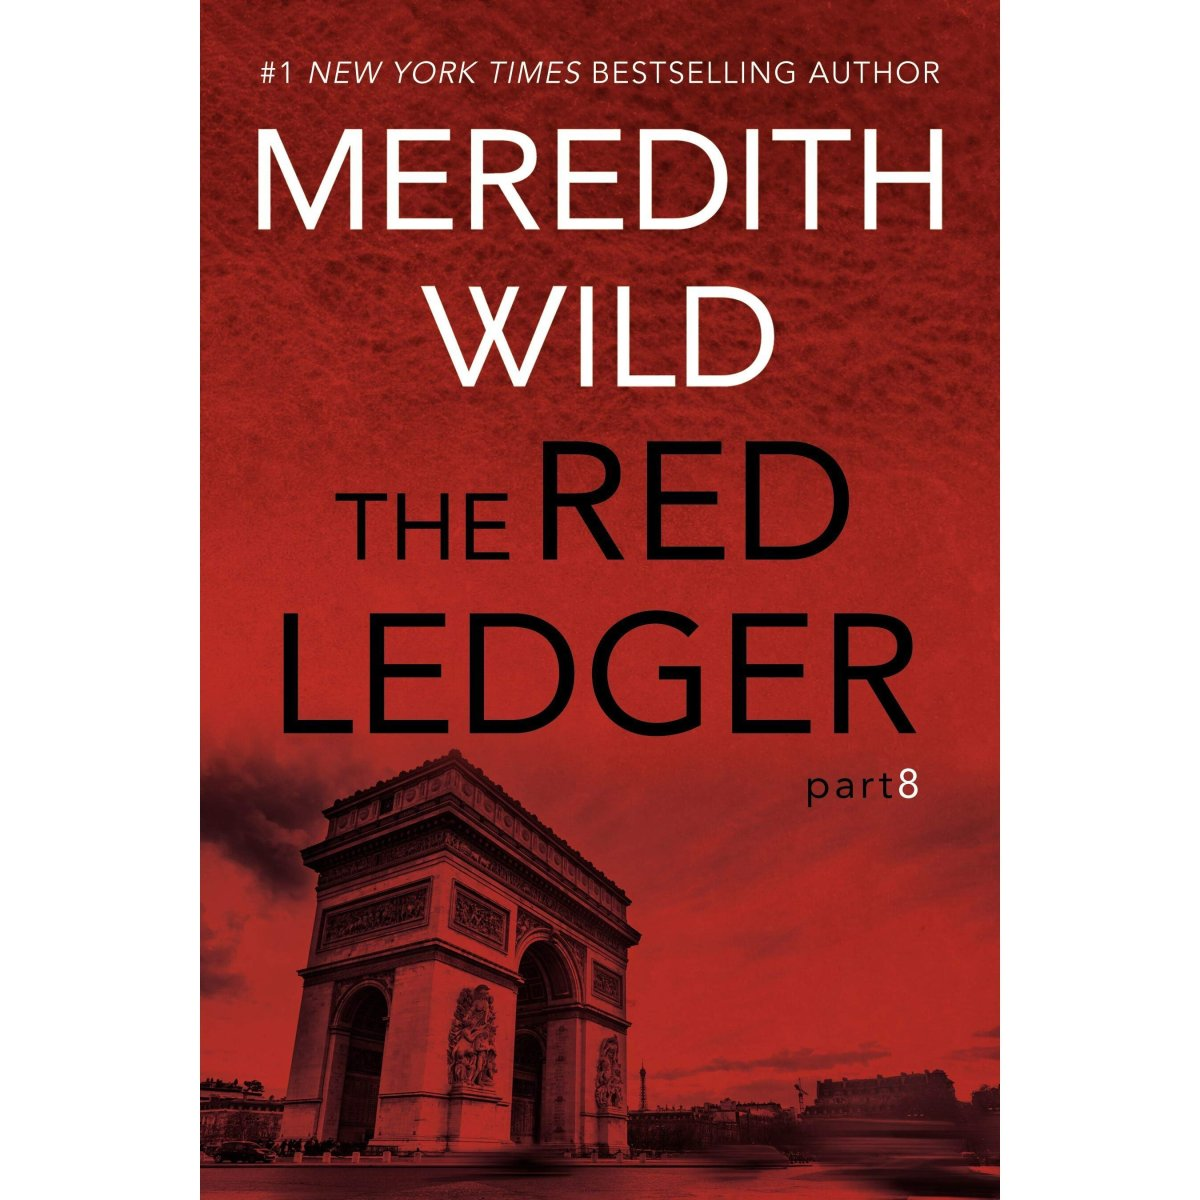 Review: The Red Ledger: Part 8 by Meredith Wild